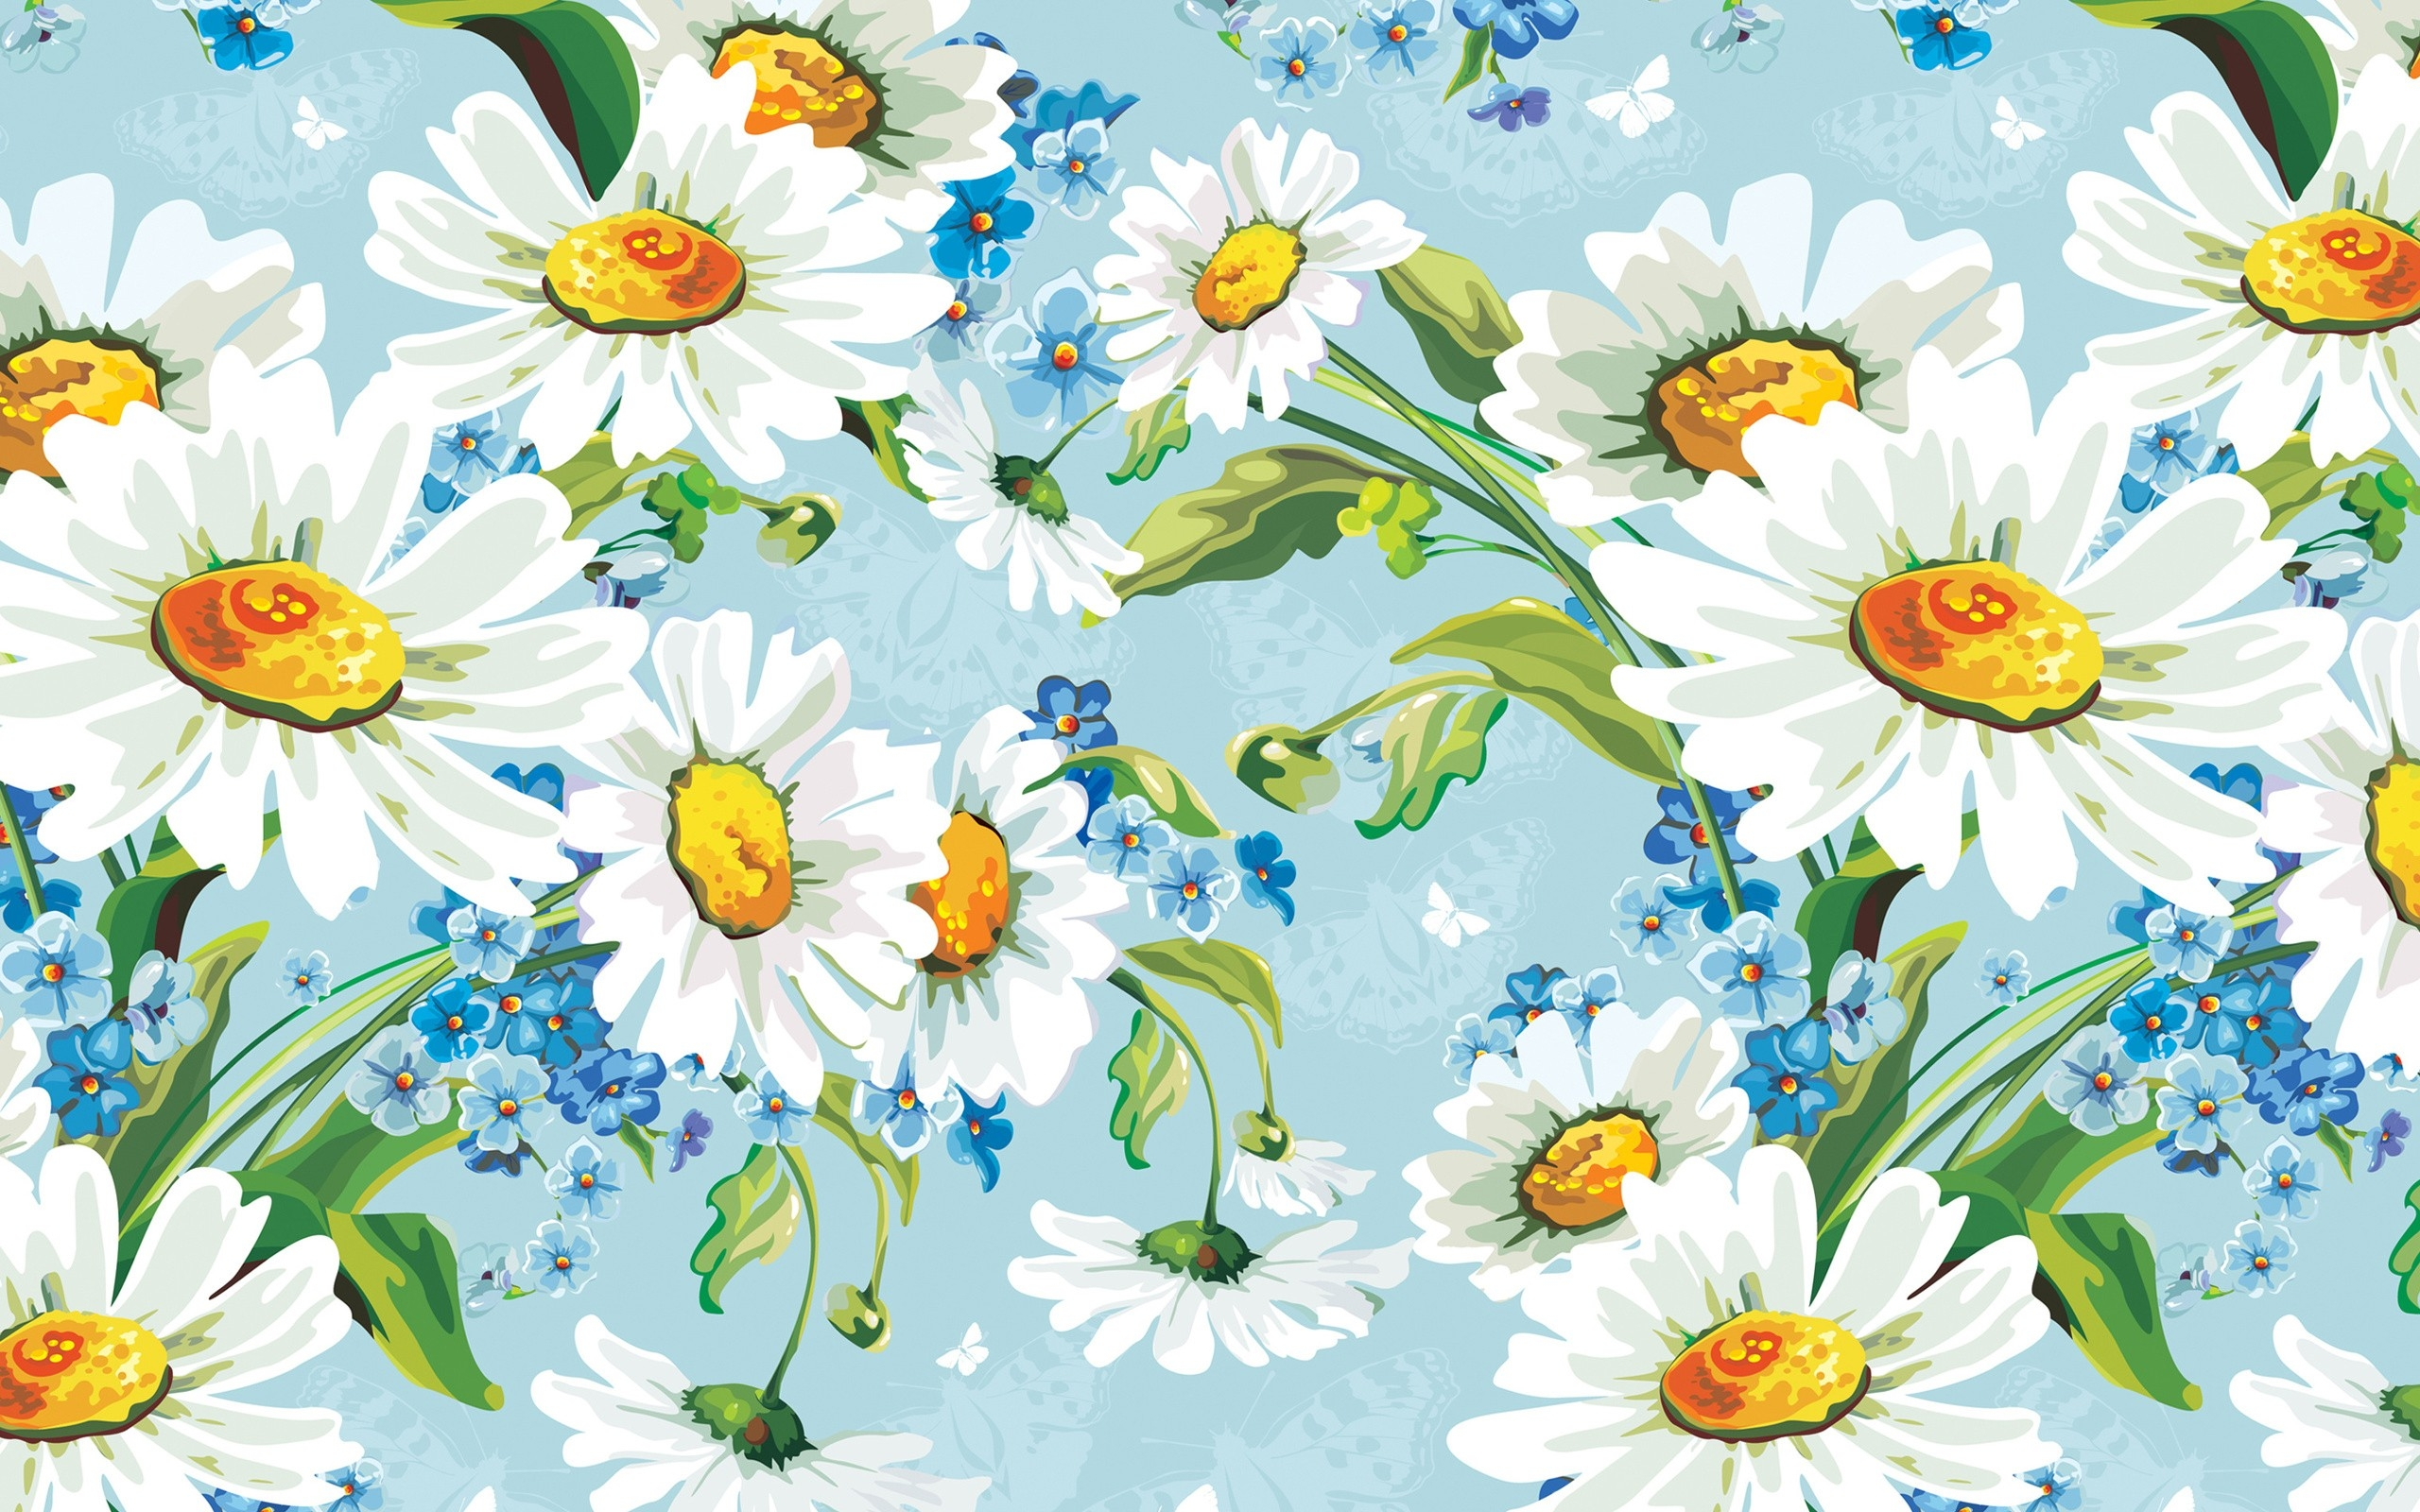 2560x1600 Wallpaper Drawing, Illustration, Flowers, Daisies, Flower